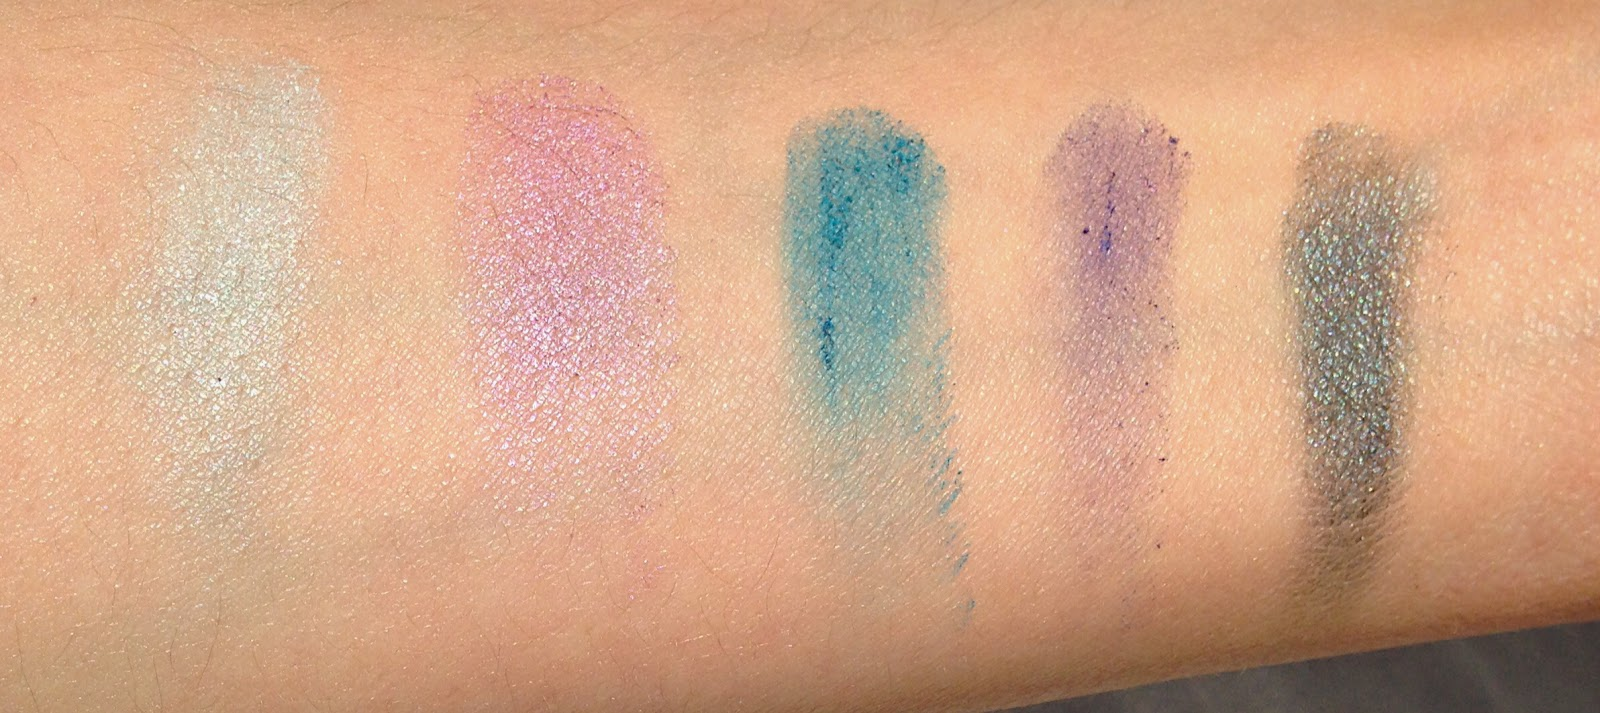 Swatches of the Forever 21 Love and beauty eye shadow palette